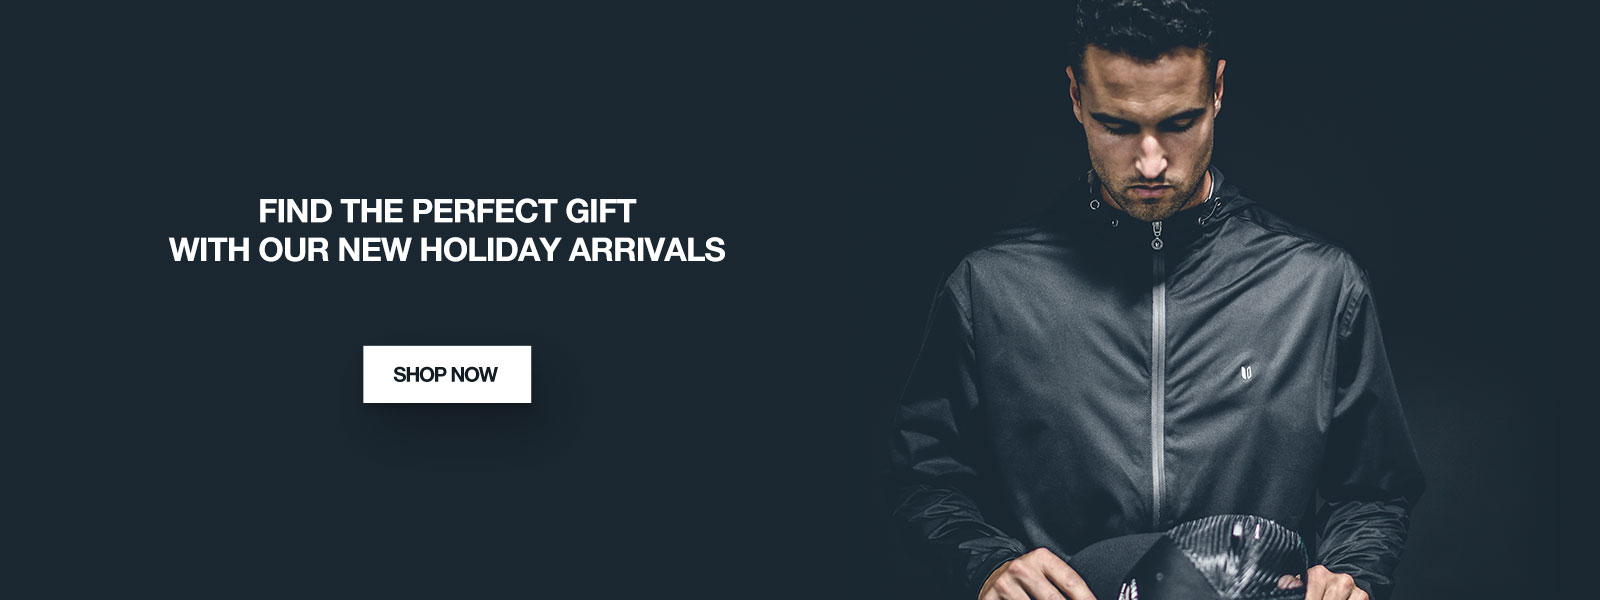 Find The Perfect Gift With Our New Holiday Arrivals